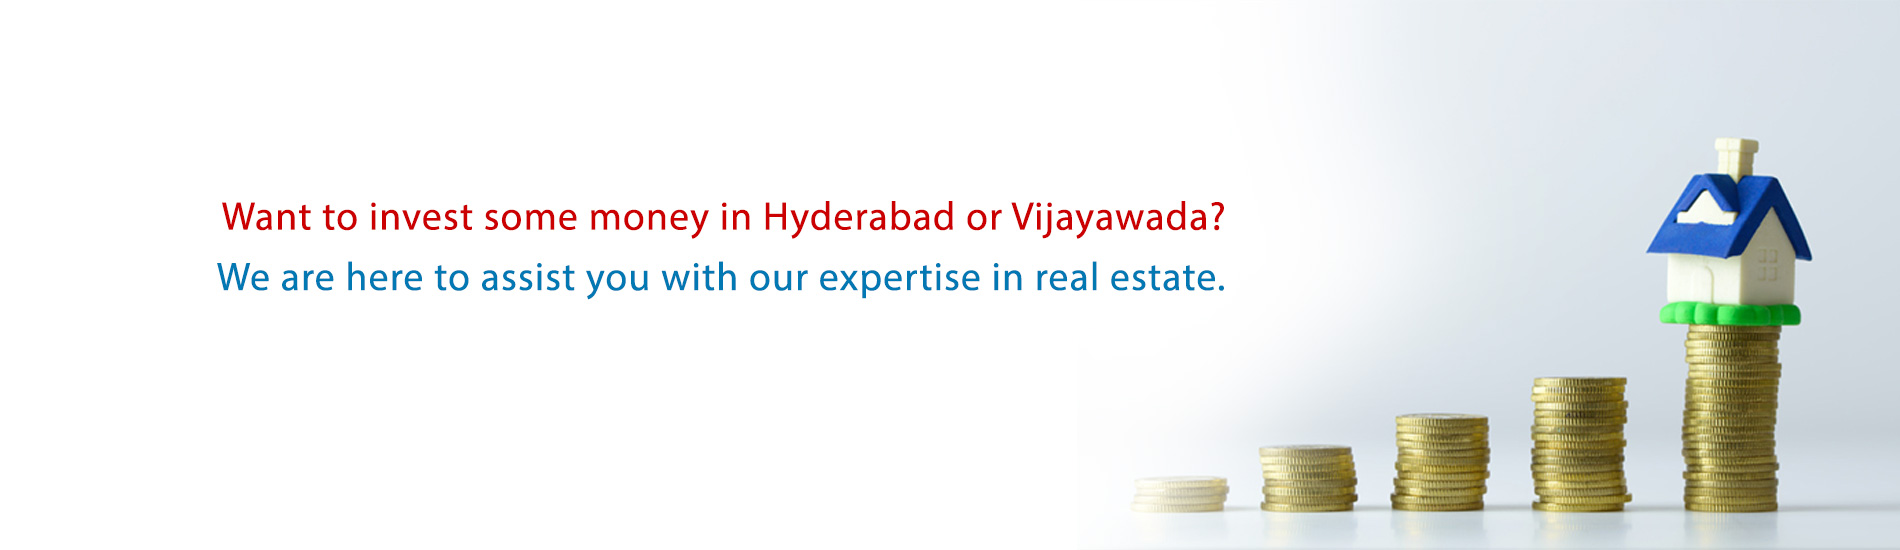 Invest in Real estate in Hyderabad and Vijayawada